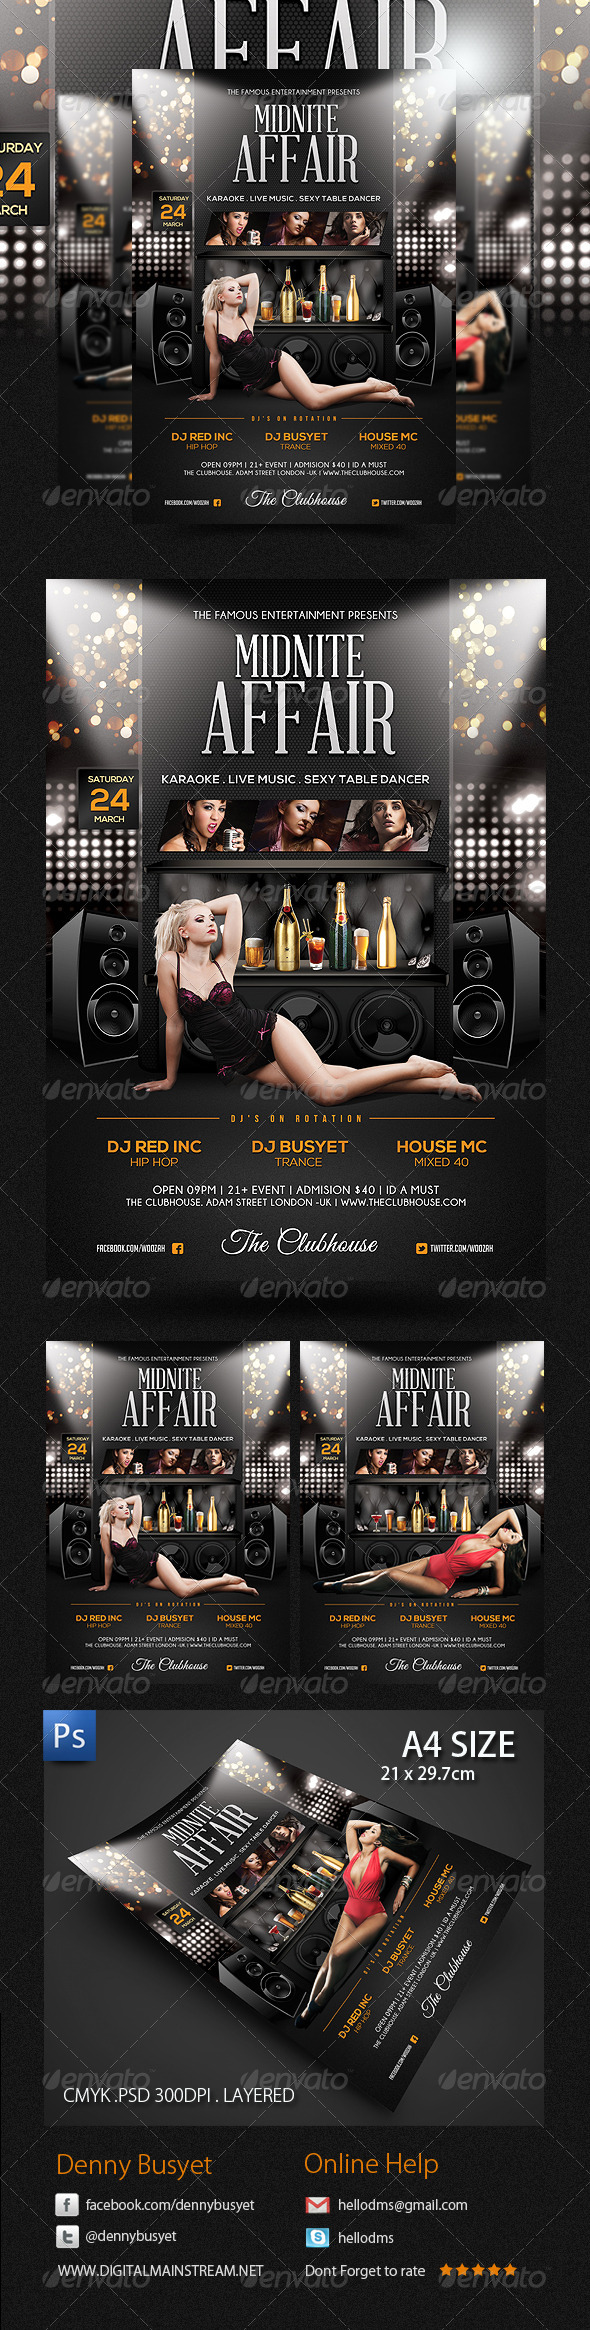 Midnite Affair Nightclub Flyer Poster Template - Events Flyers